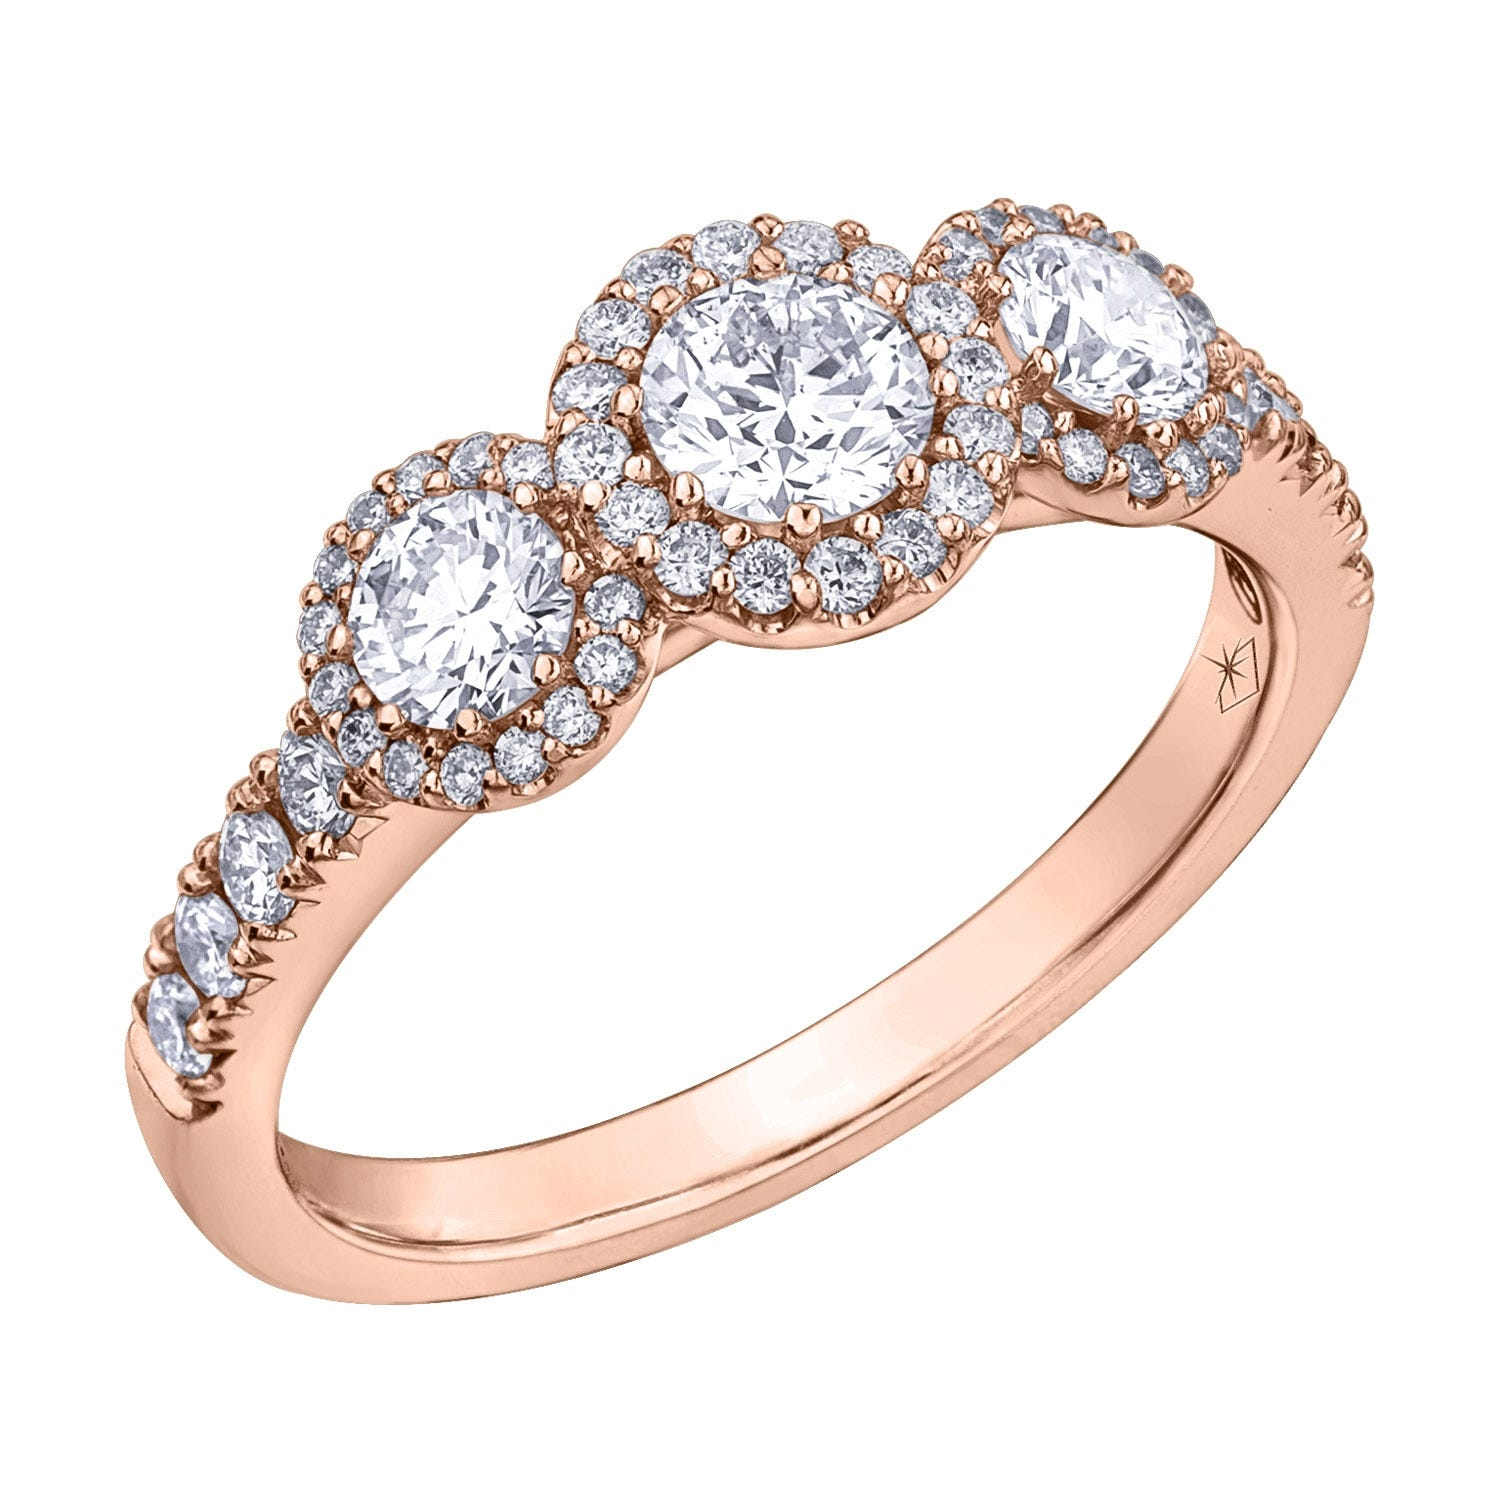 Northern Star Special Order 1.00ct Diamond 18ct Rose Gold Trilogy Ring